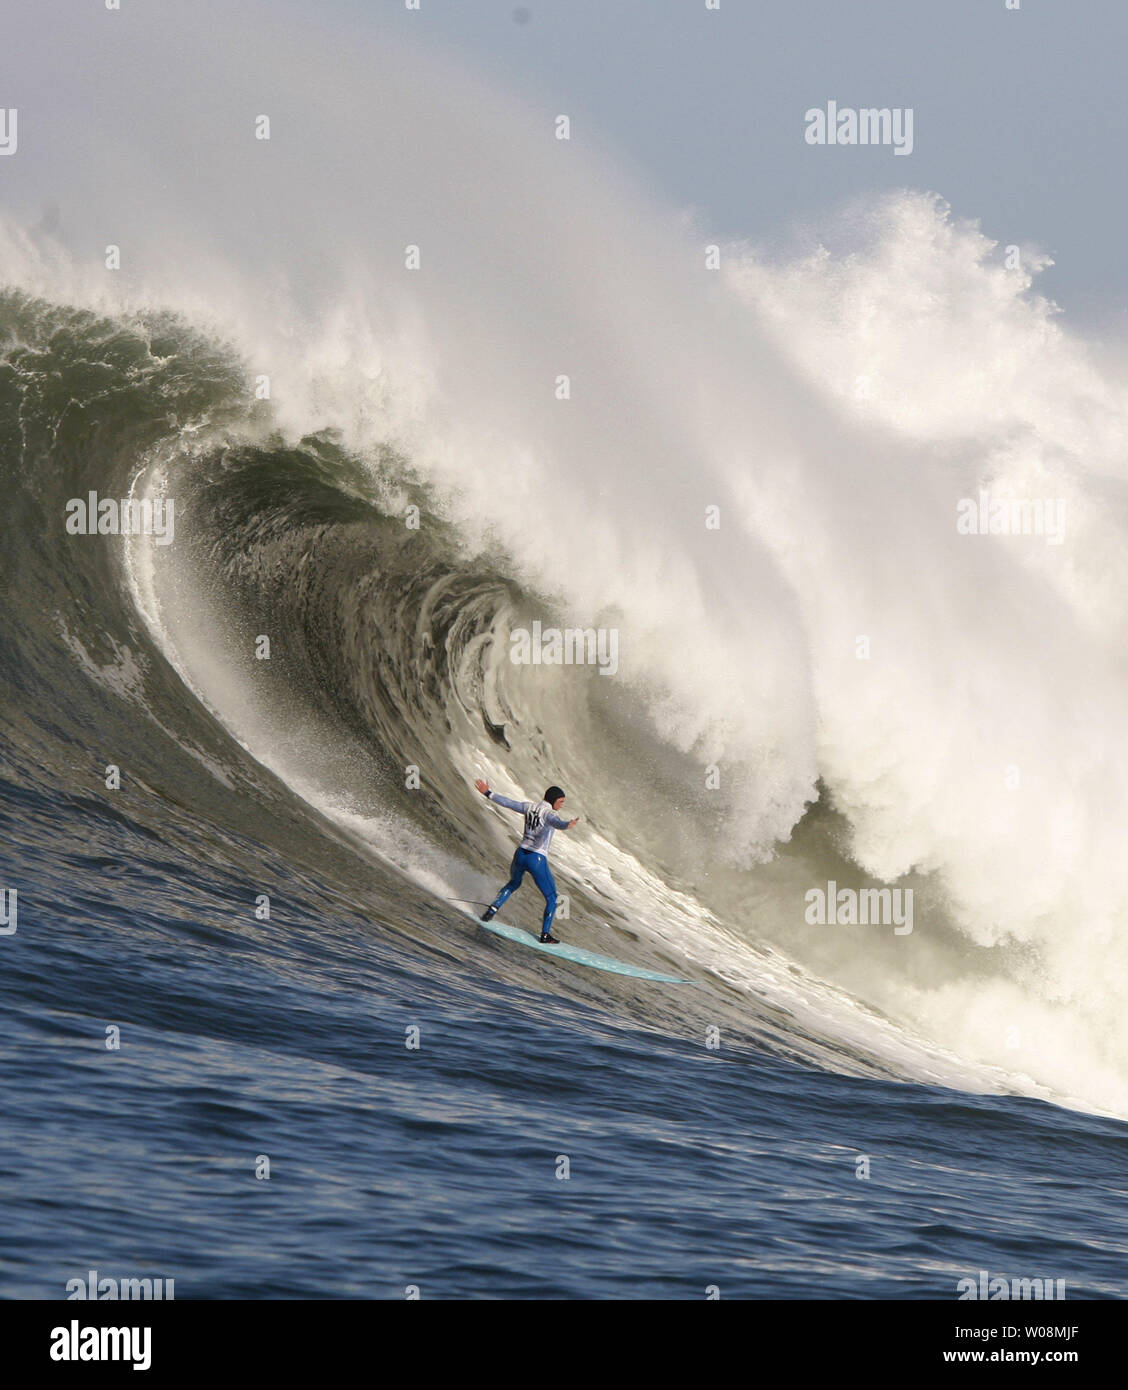 Mavericks California Stock Photos & Mavericks California